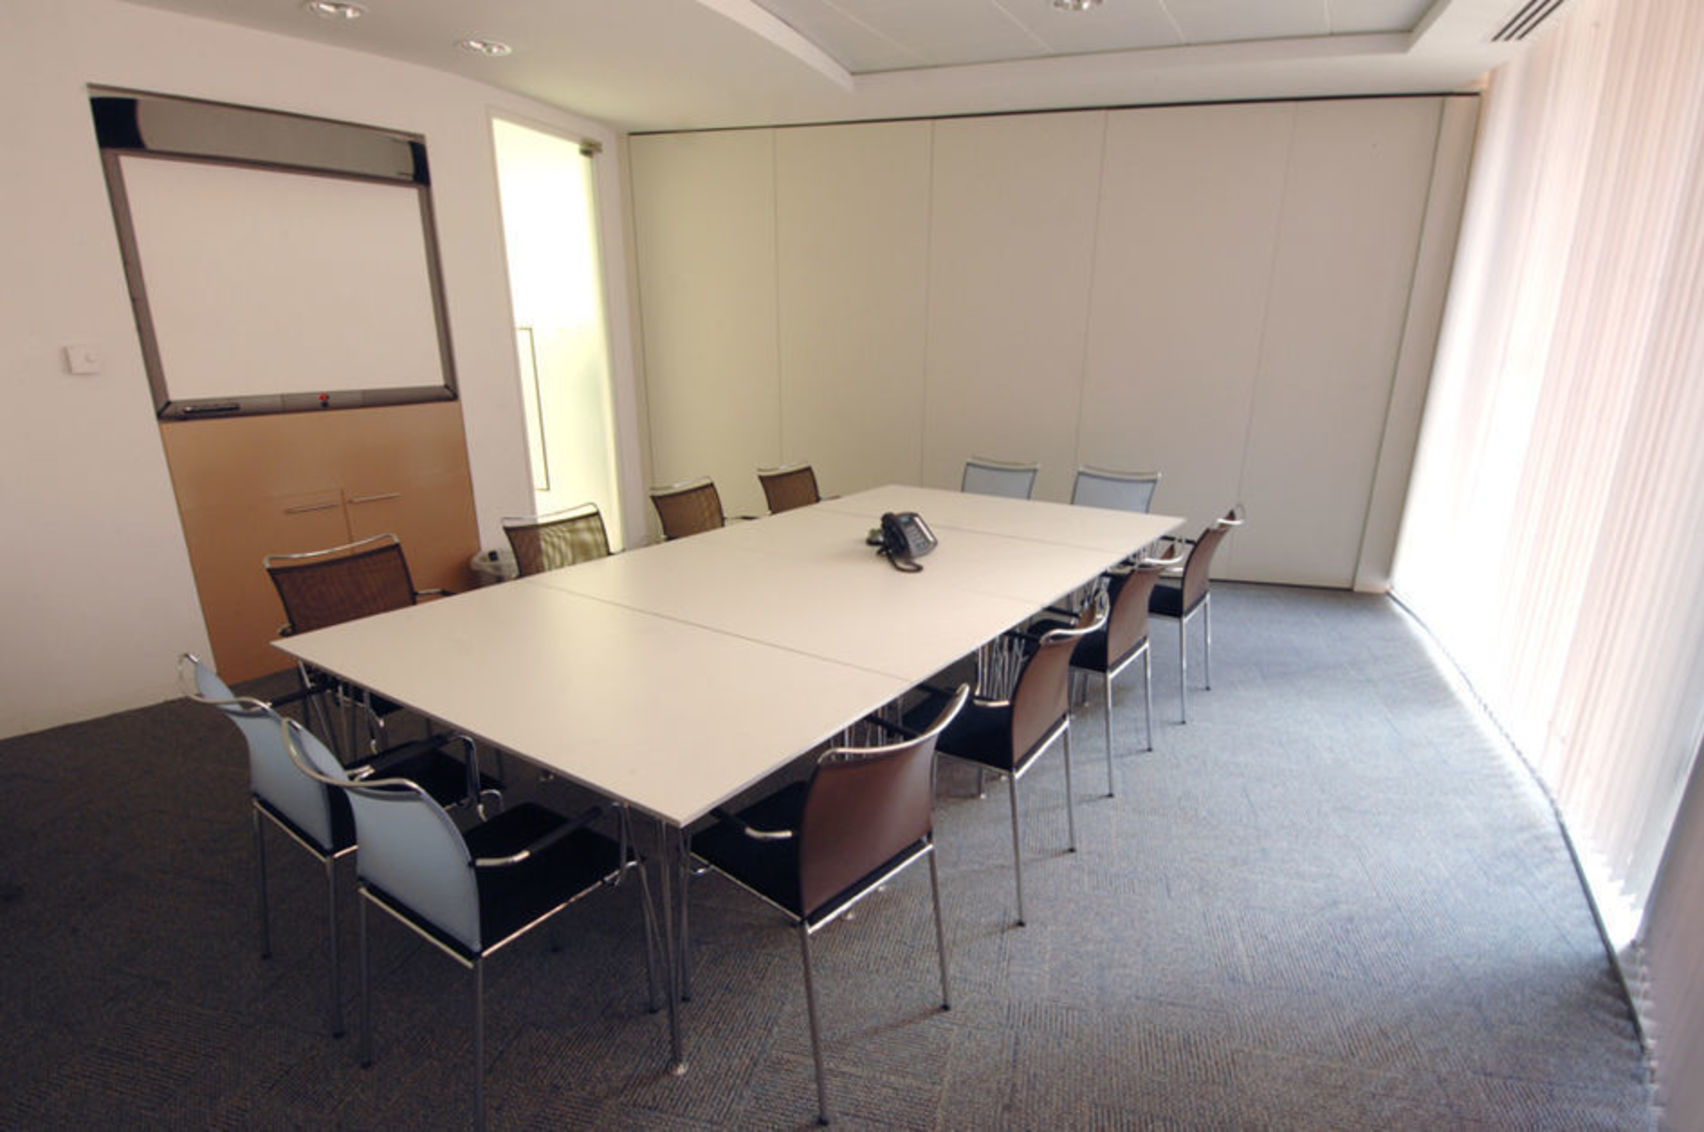 Boardroom, The Work Foundation